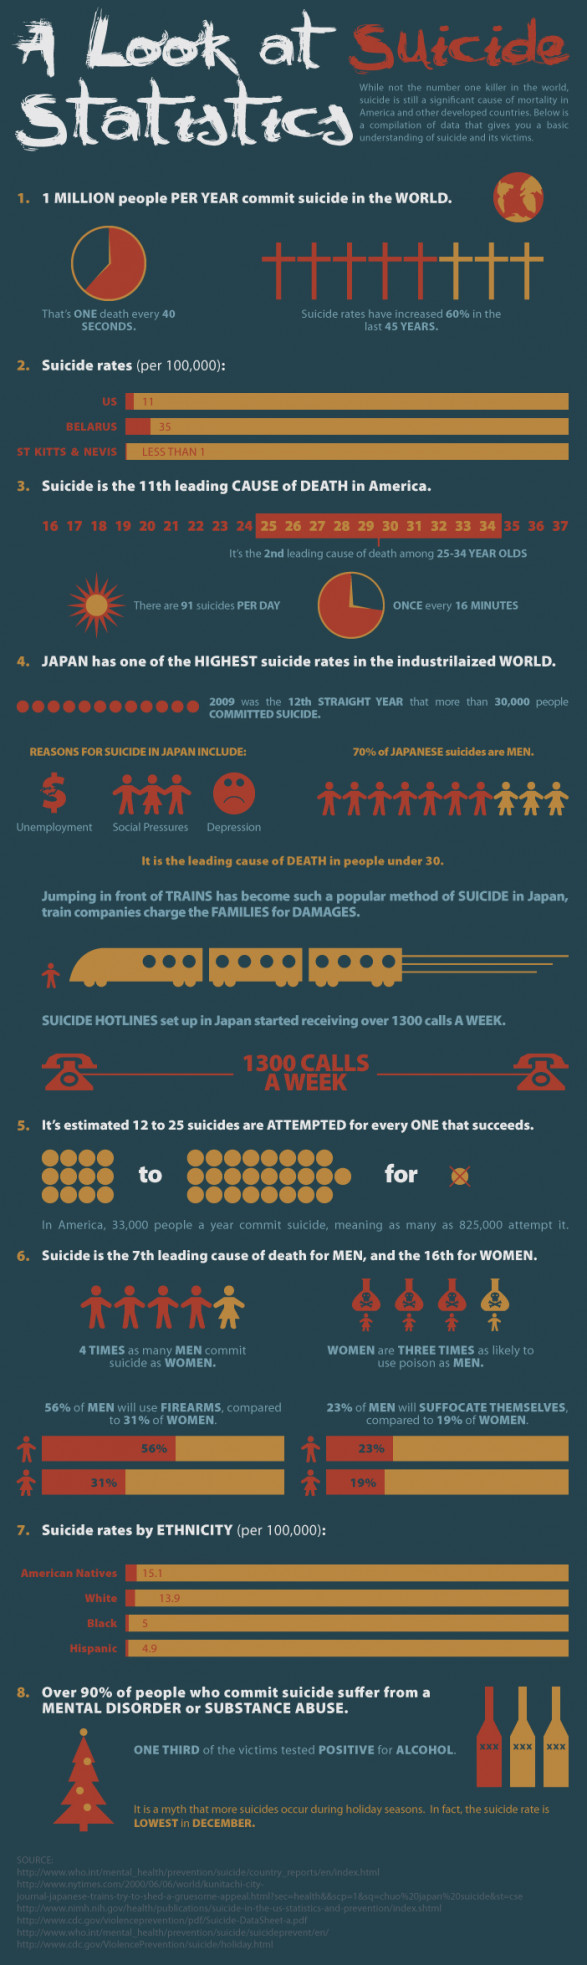 A Look at Suicide Statistics